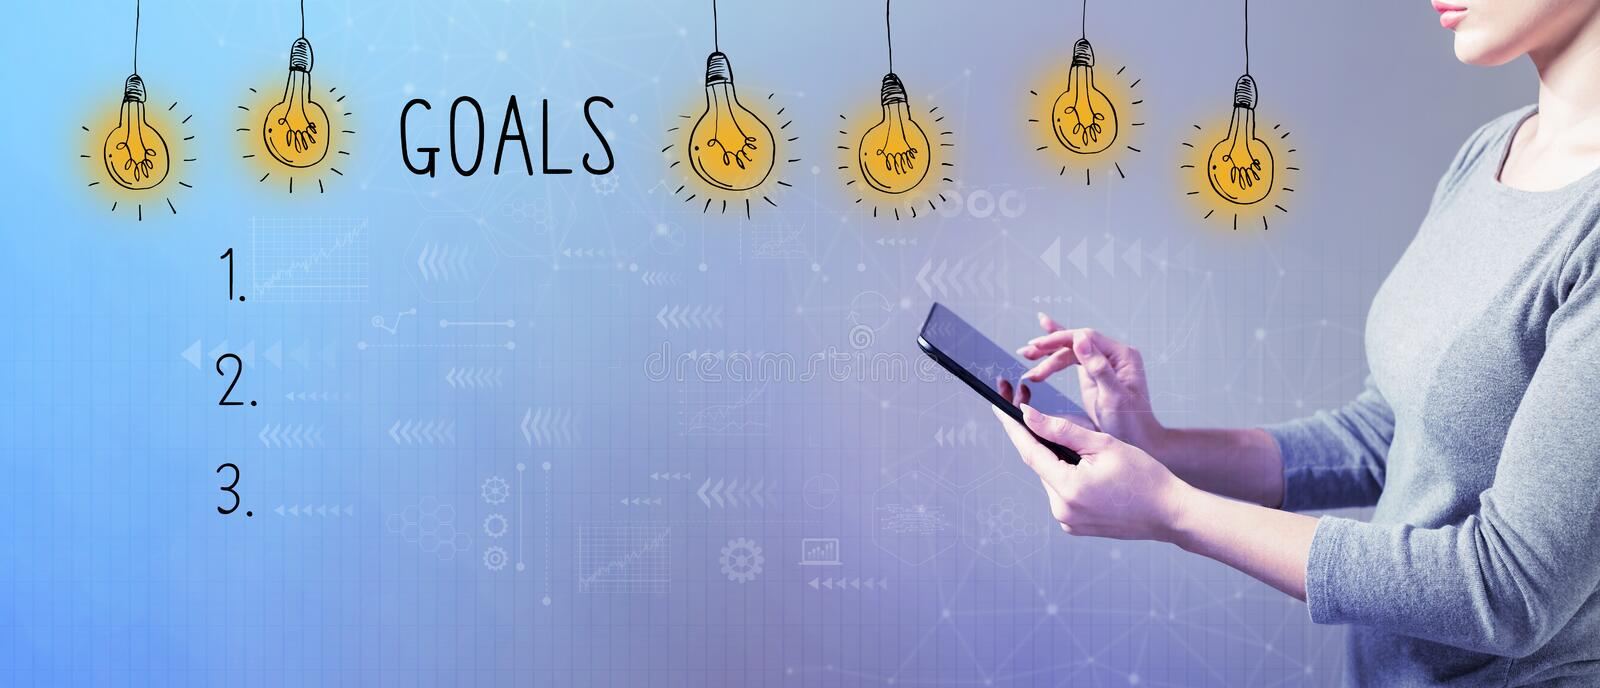 Goal list with woman using a tablet royalty free stock image